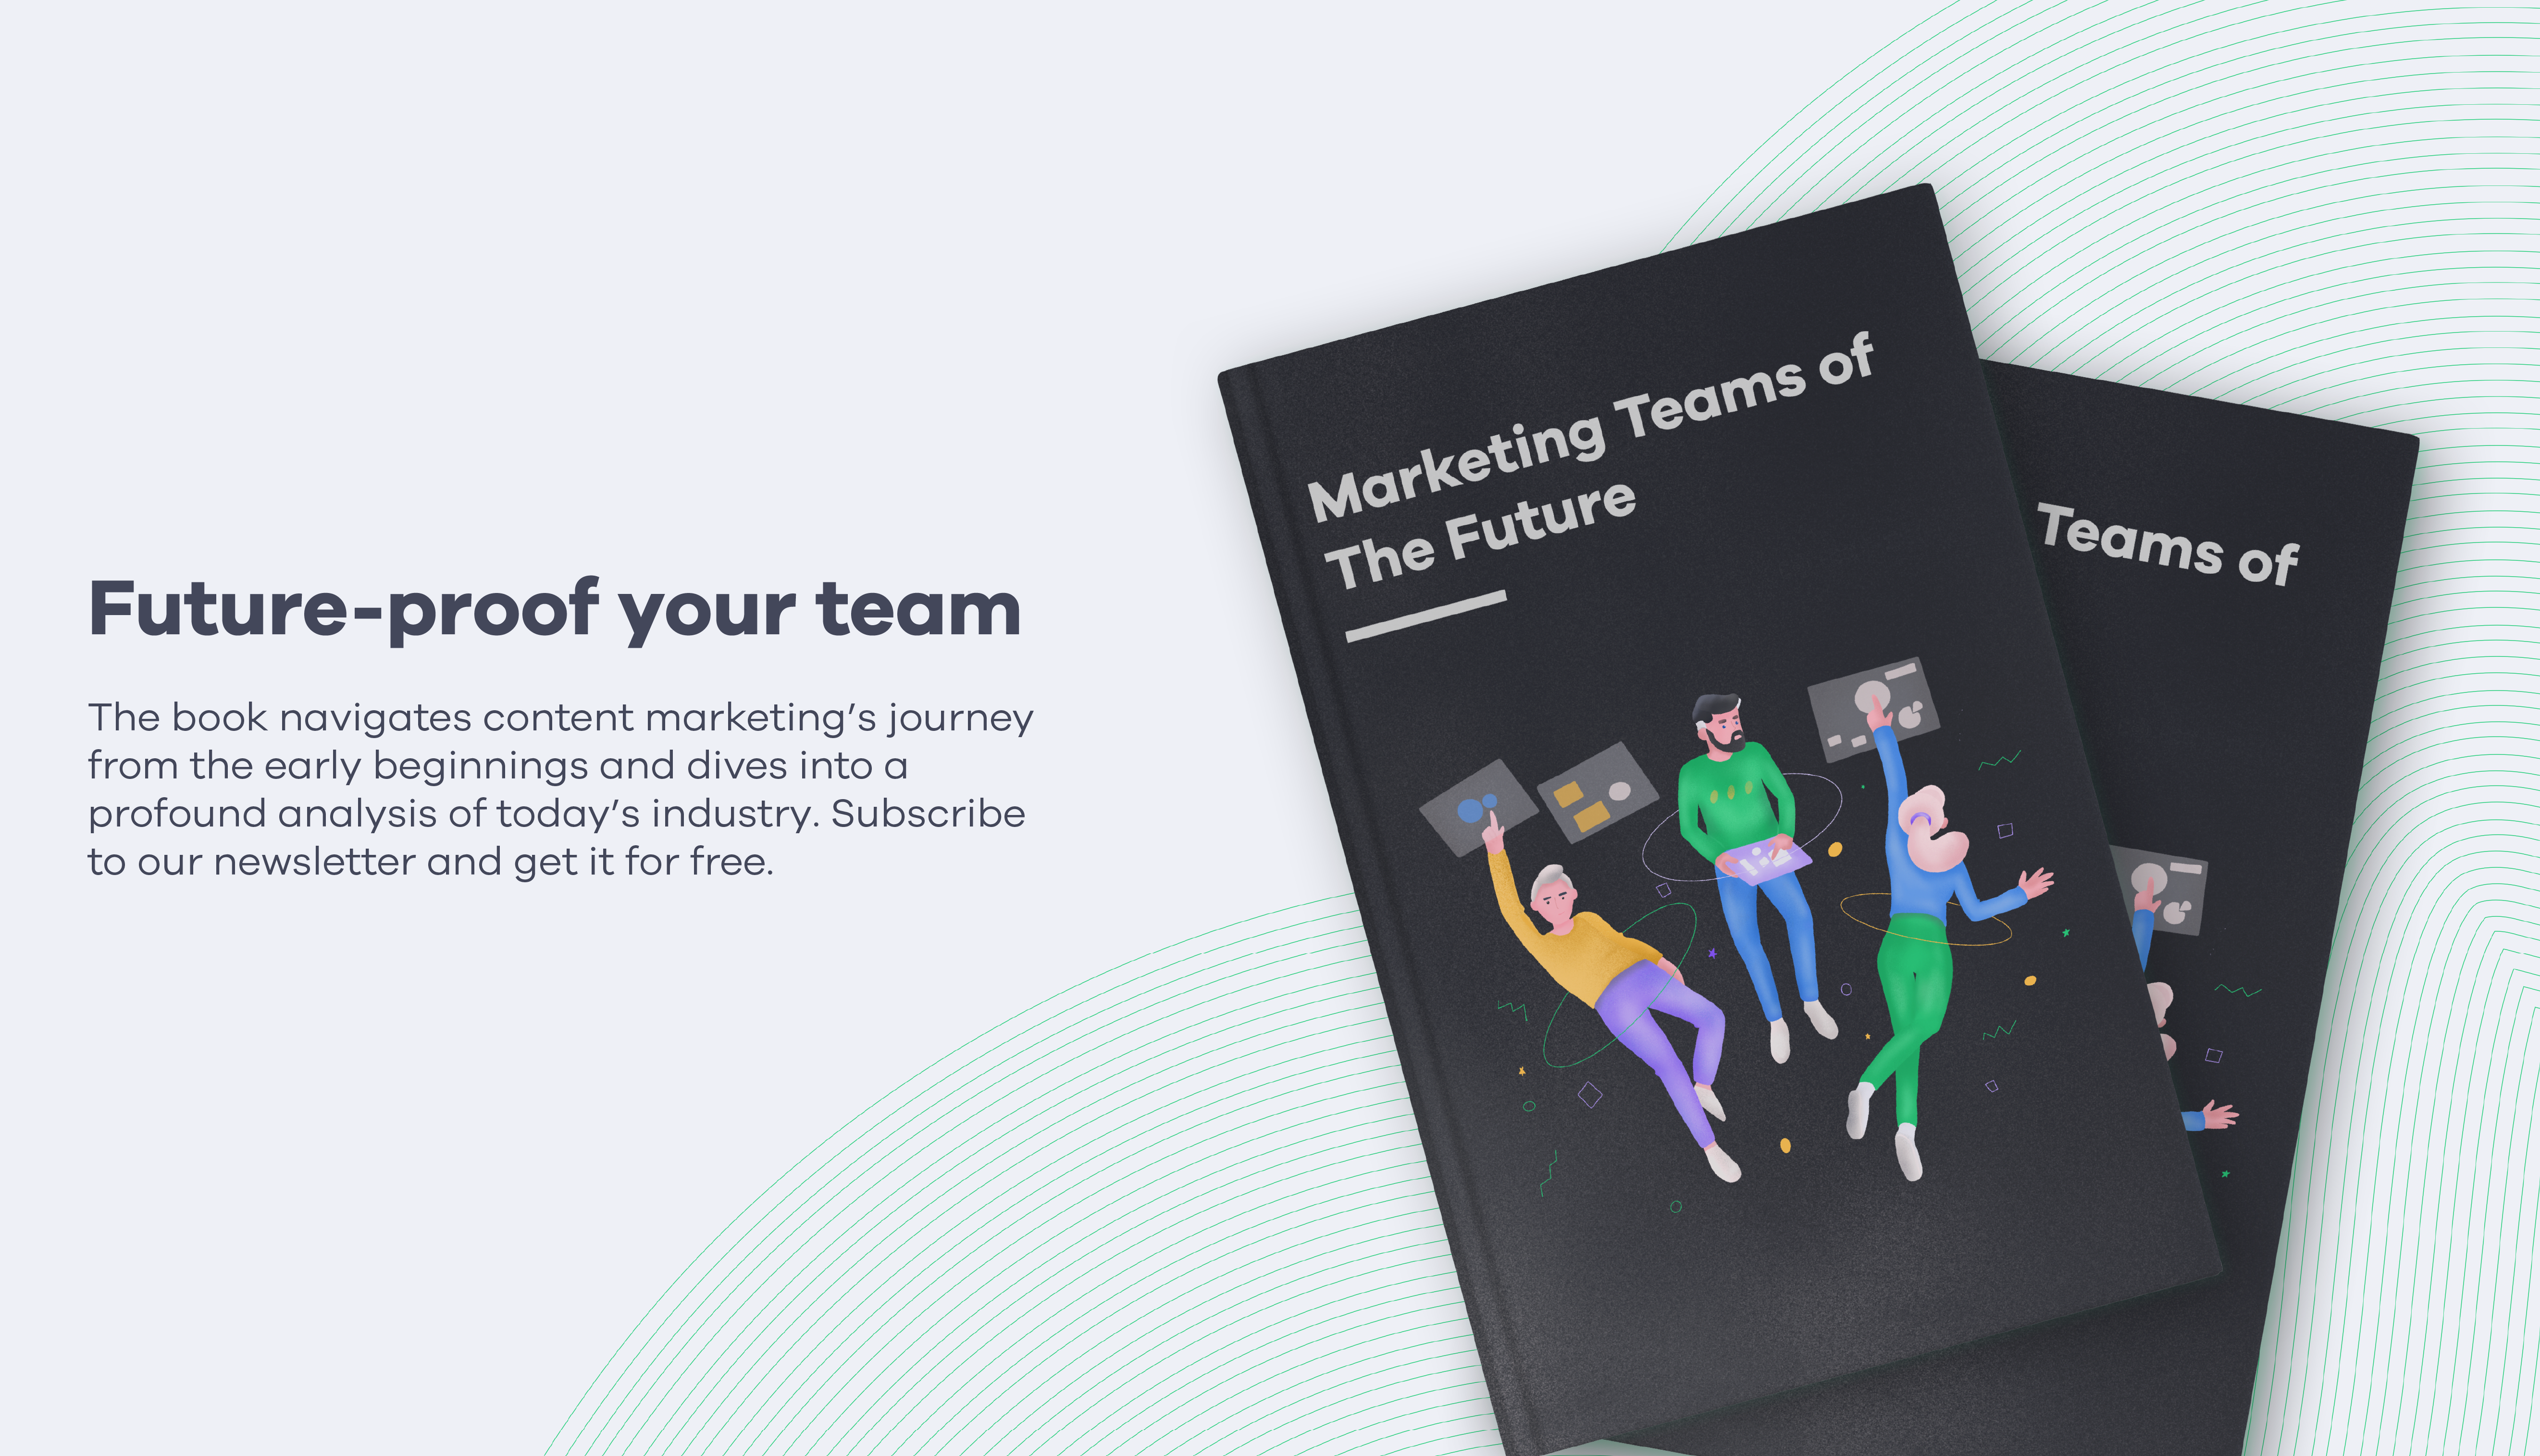 Marketing Teams of The Future - A book for marketers wanting to future-proof content teams